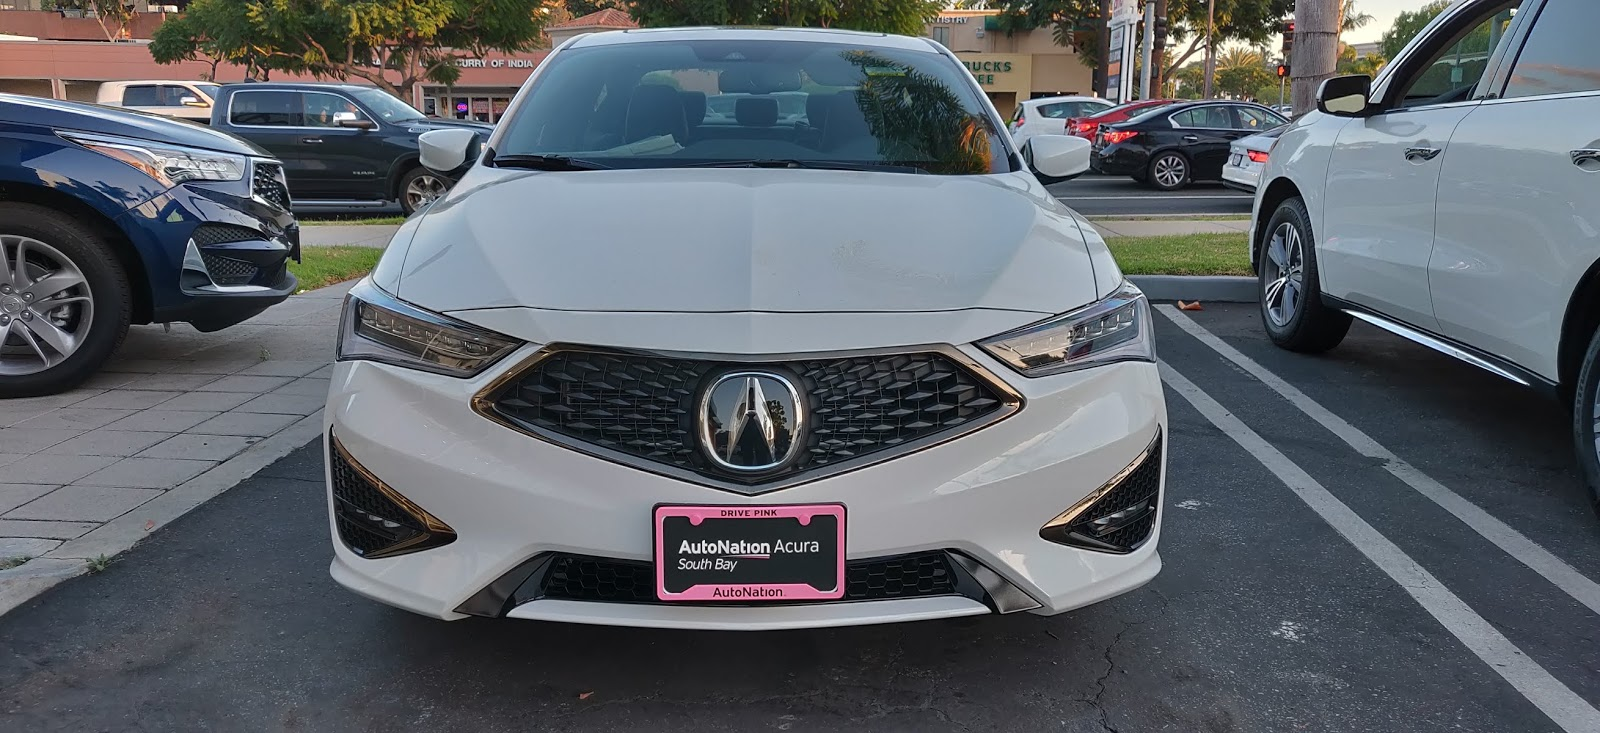 East-West Brothers Garage: Test Drive: 2019 Acura ILX